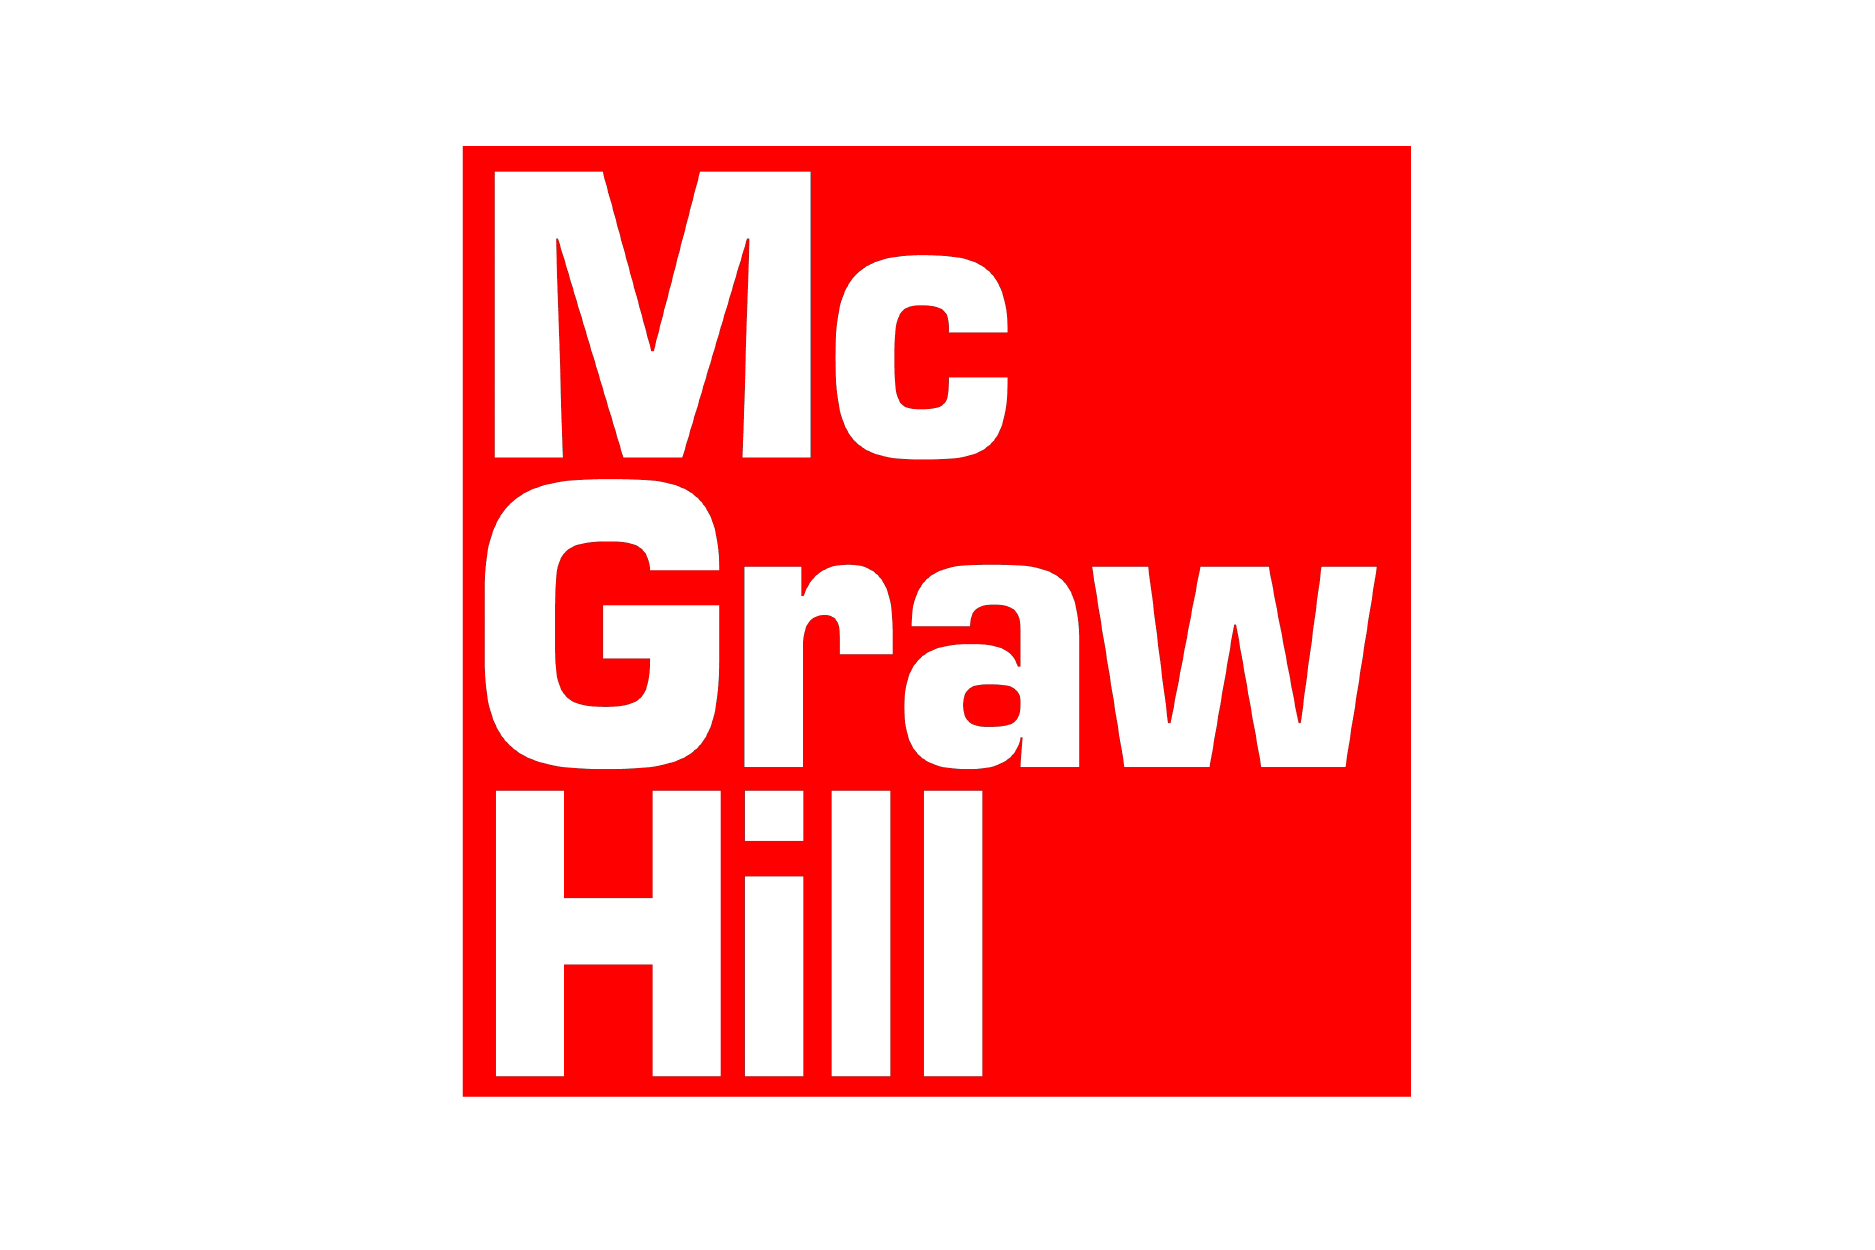 mcgraw-hill.png